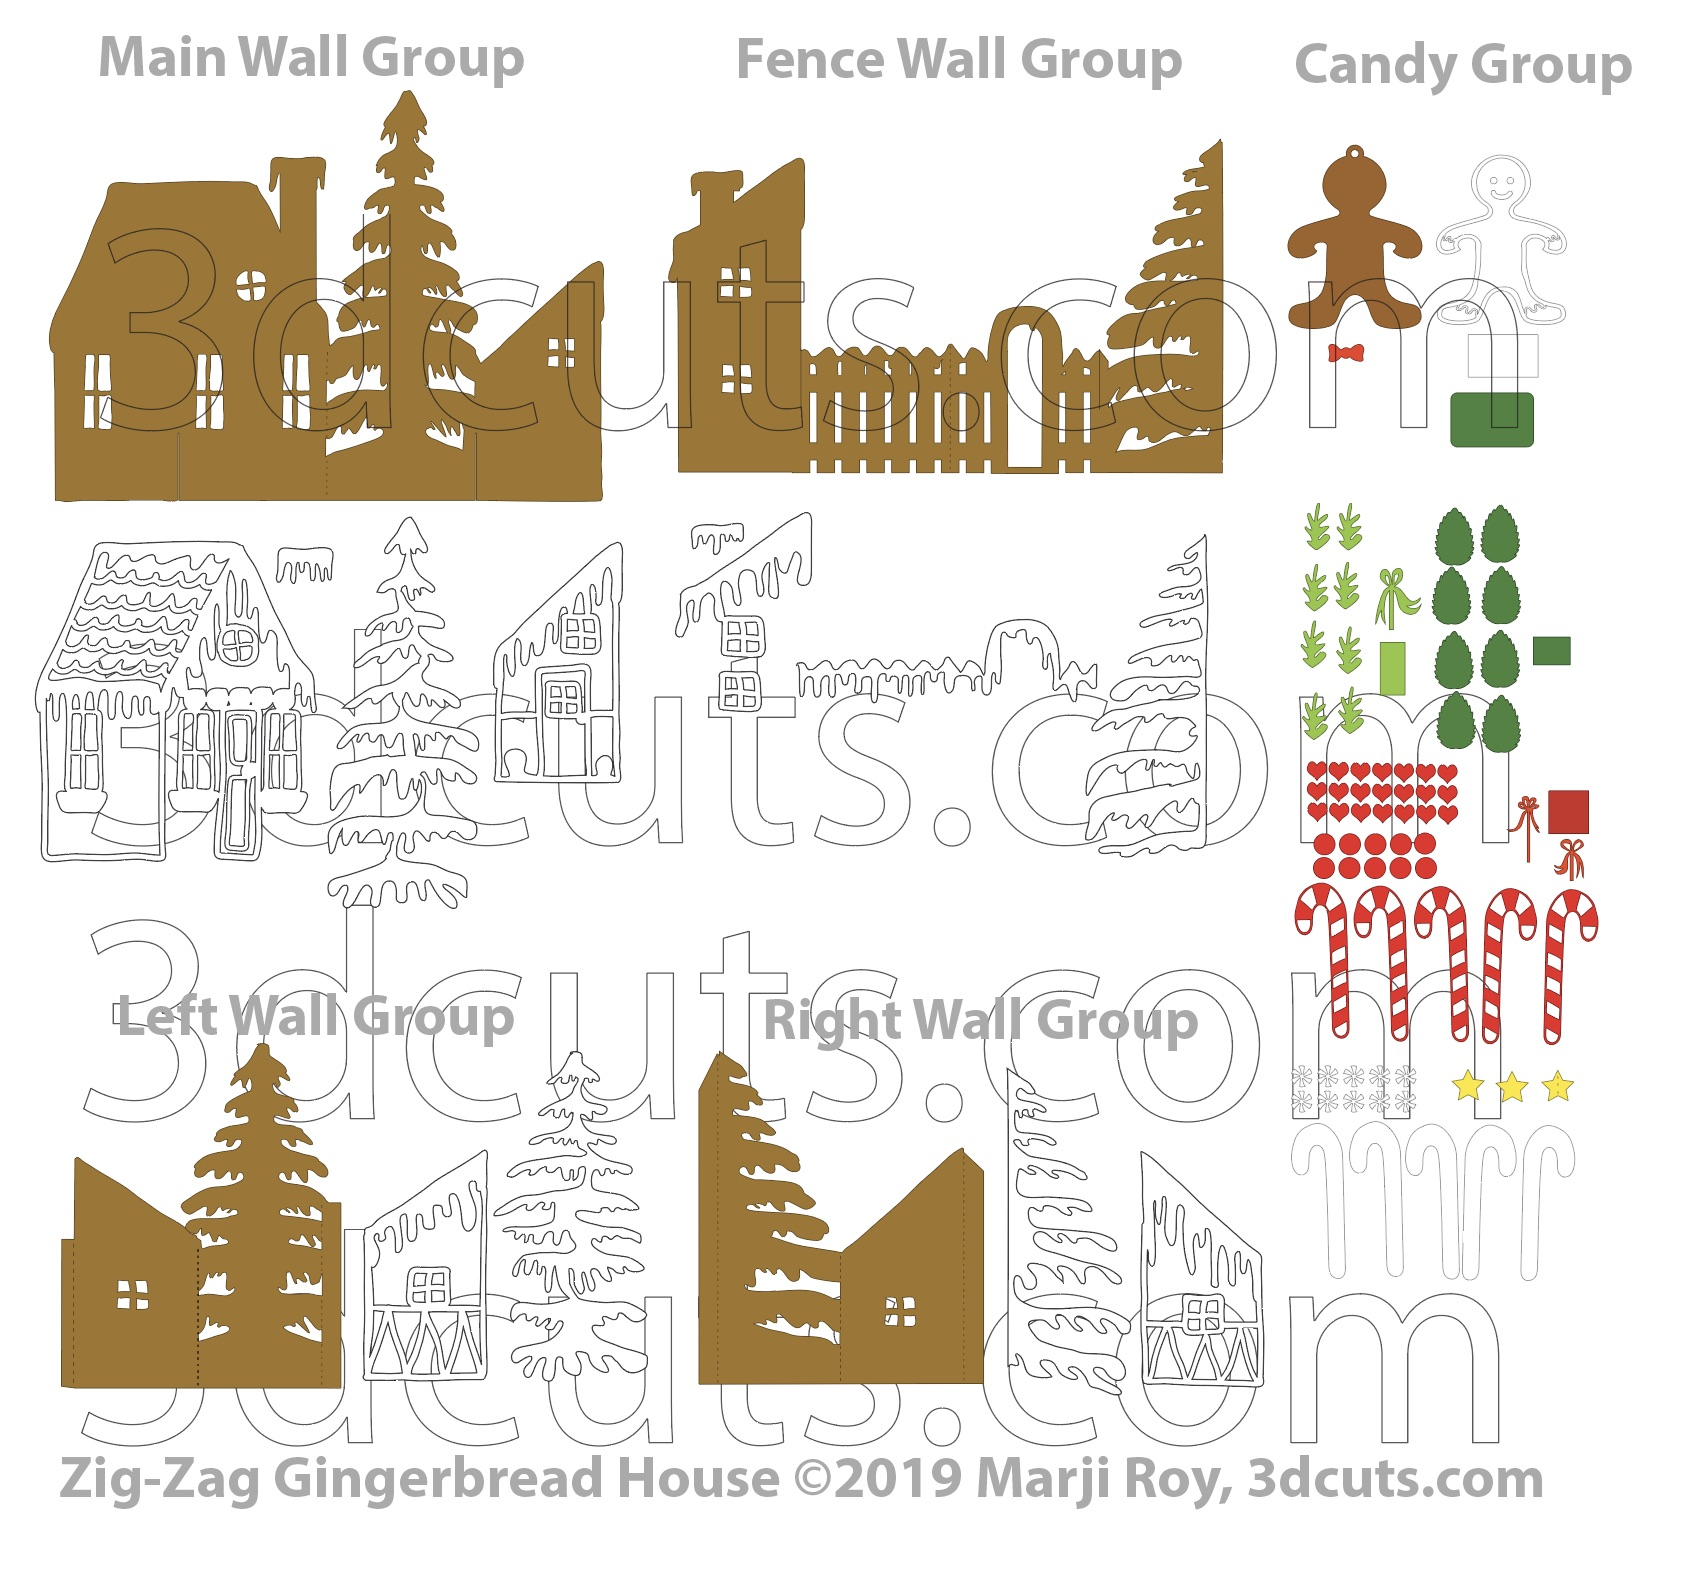 Gingerbread House Zig Zag Card, ©3DCuts.com, Marji Roy, 3D cutting files in .svg, .dxf, and .pdf formats for use with Silhouette, Cricut and other cutting machines, paper crafting files